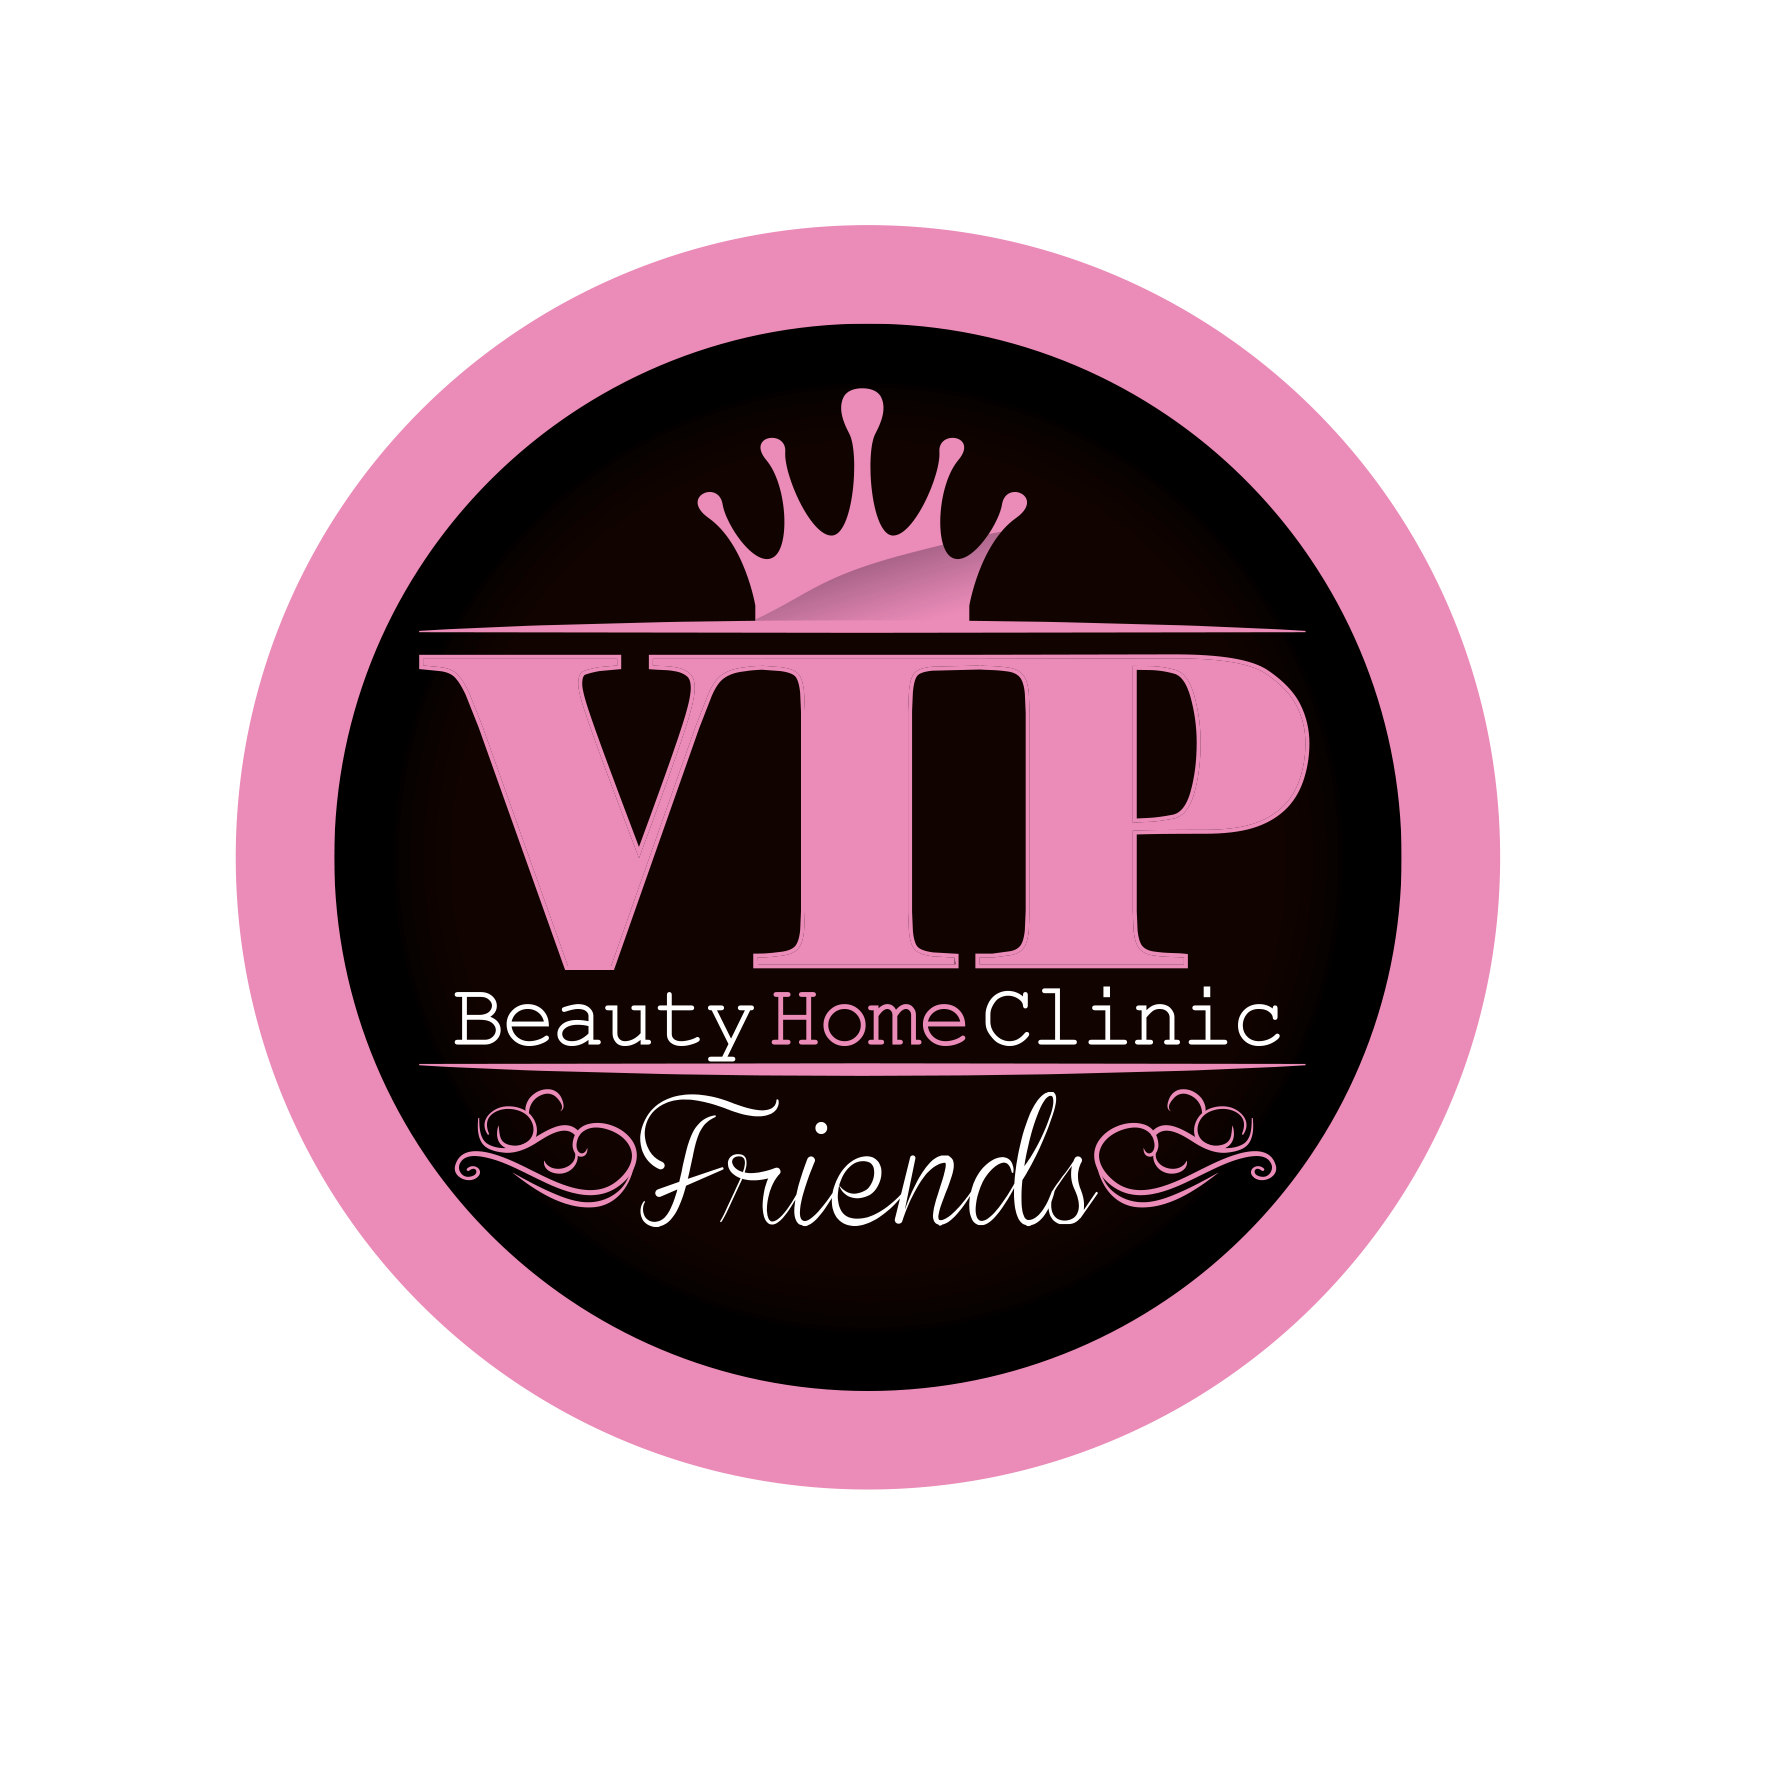 Vip friends logo2(1)